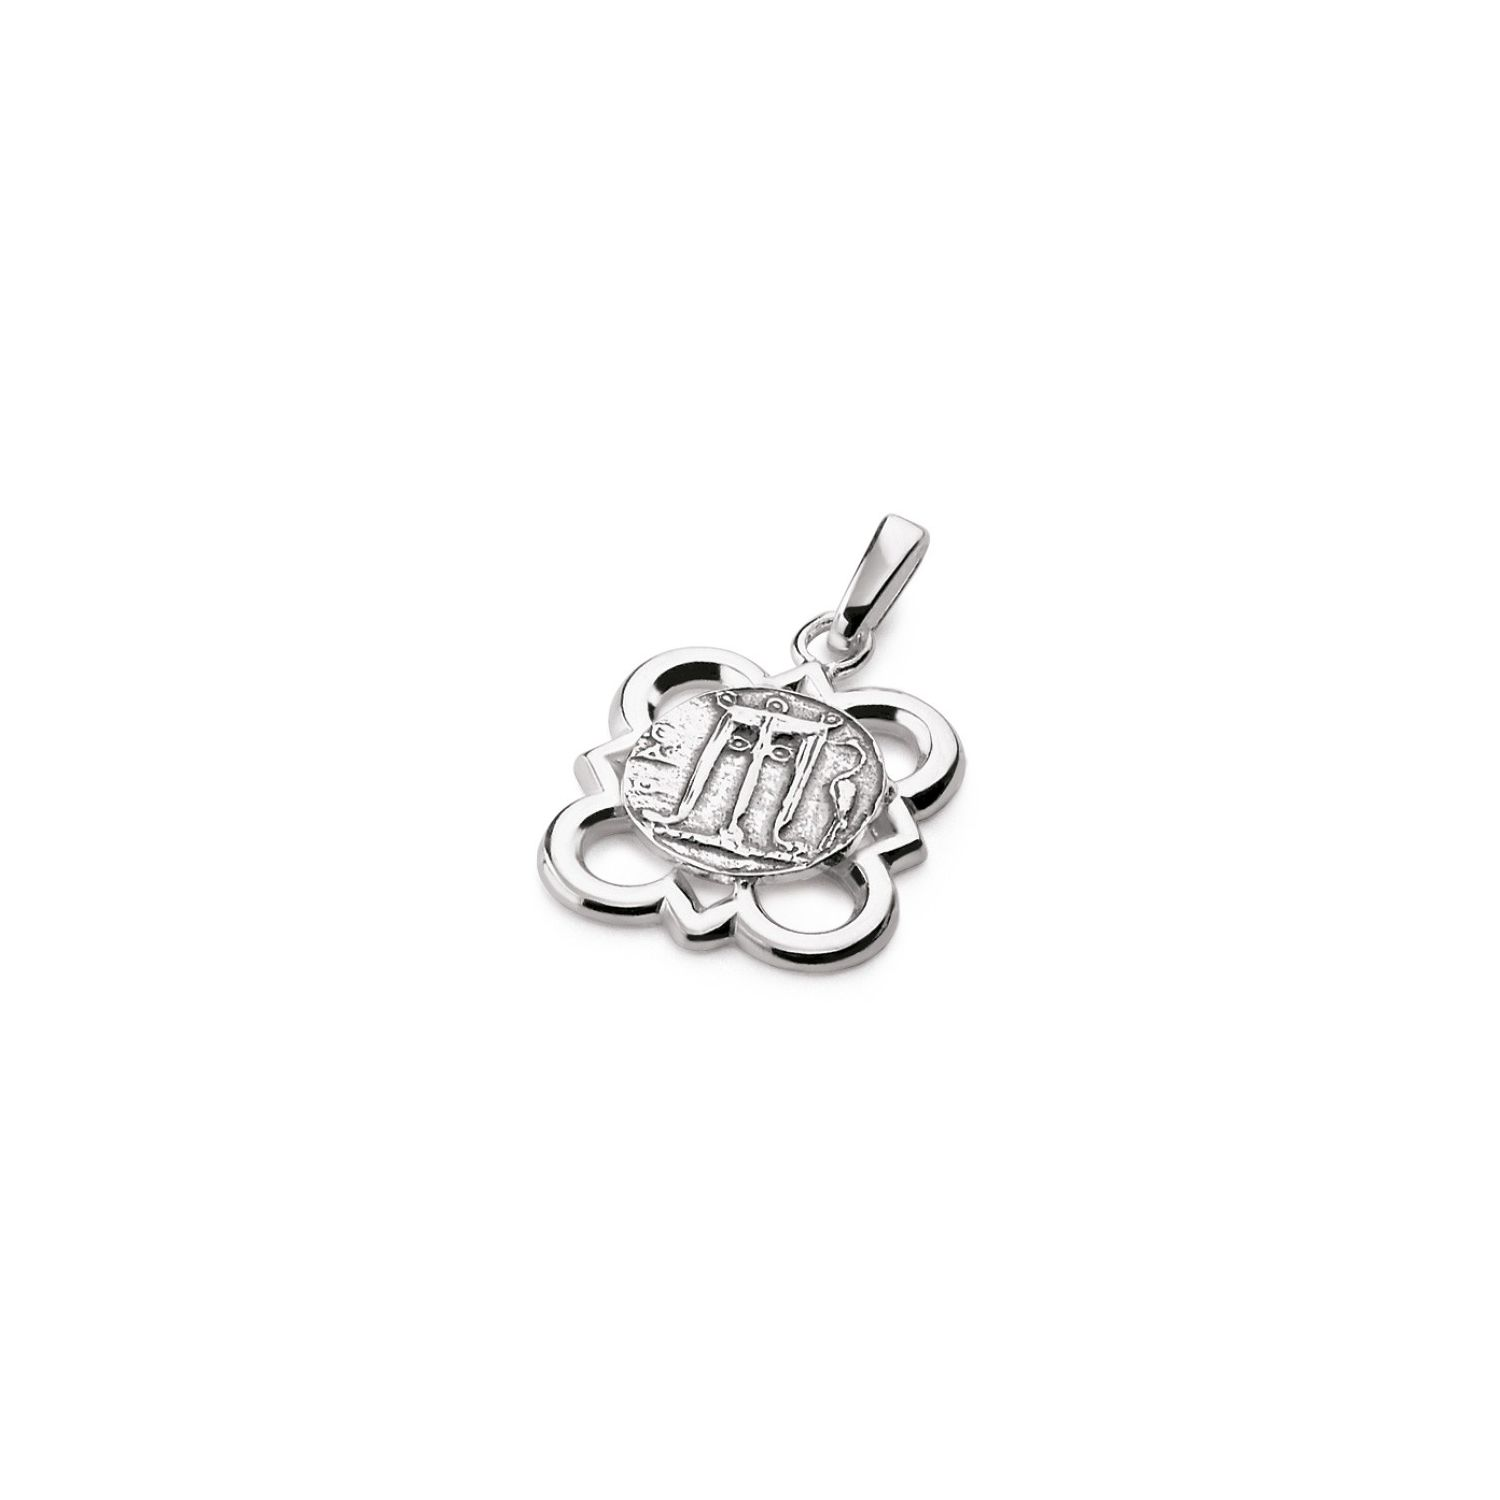 Pendant with Statere Coin (31208)